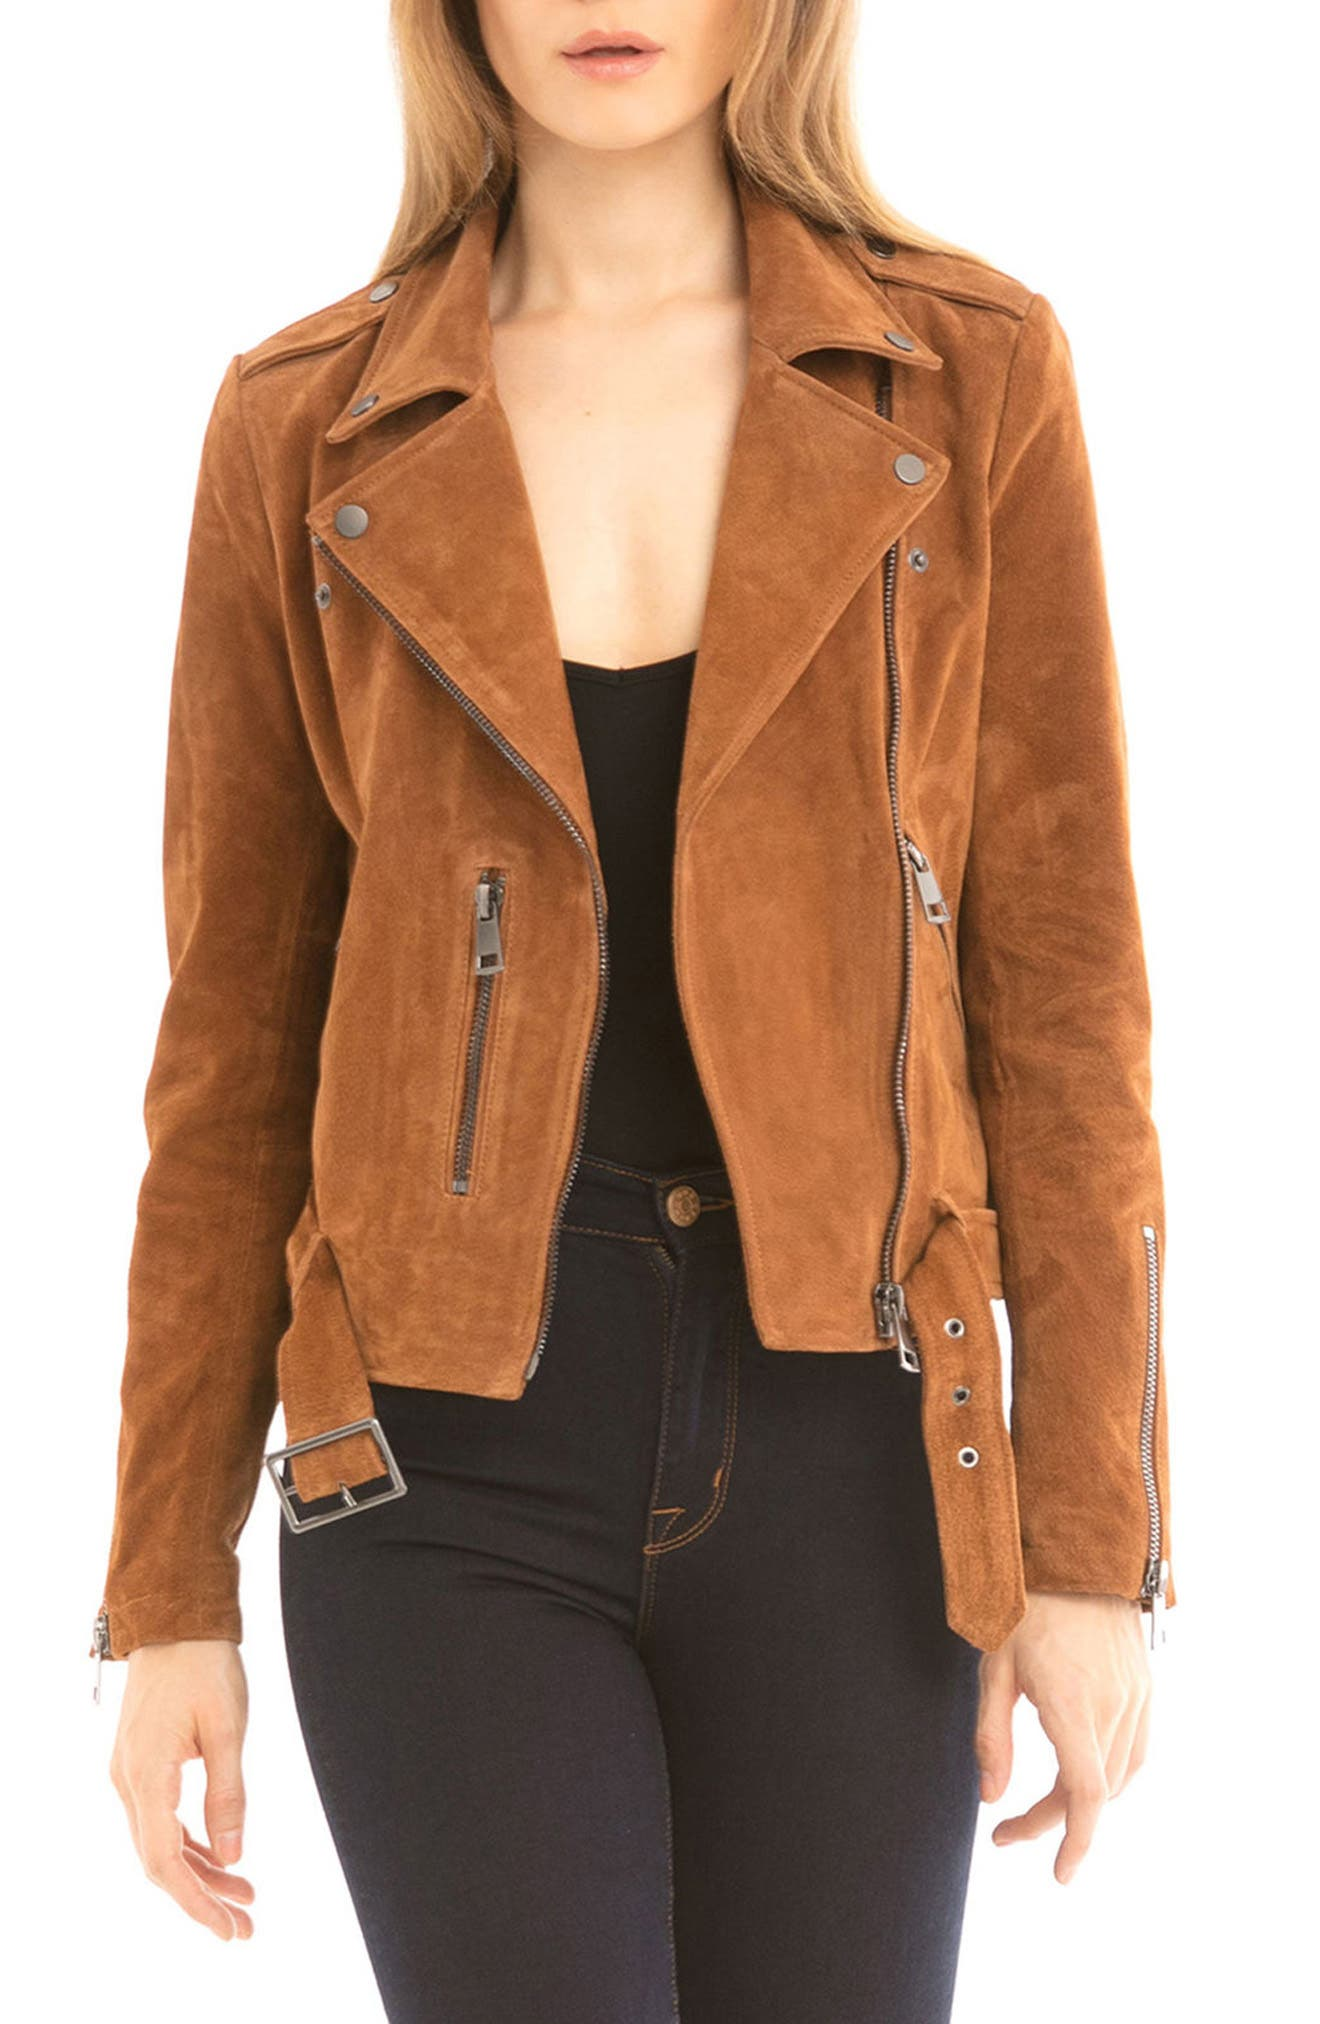 NYC  Suede Jacket,                             Main thumbnail 1, color,                             200